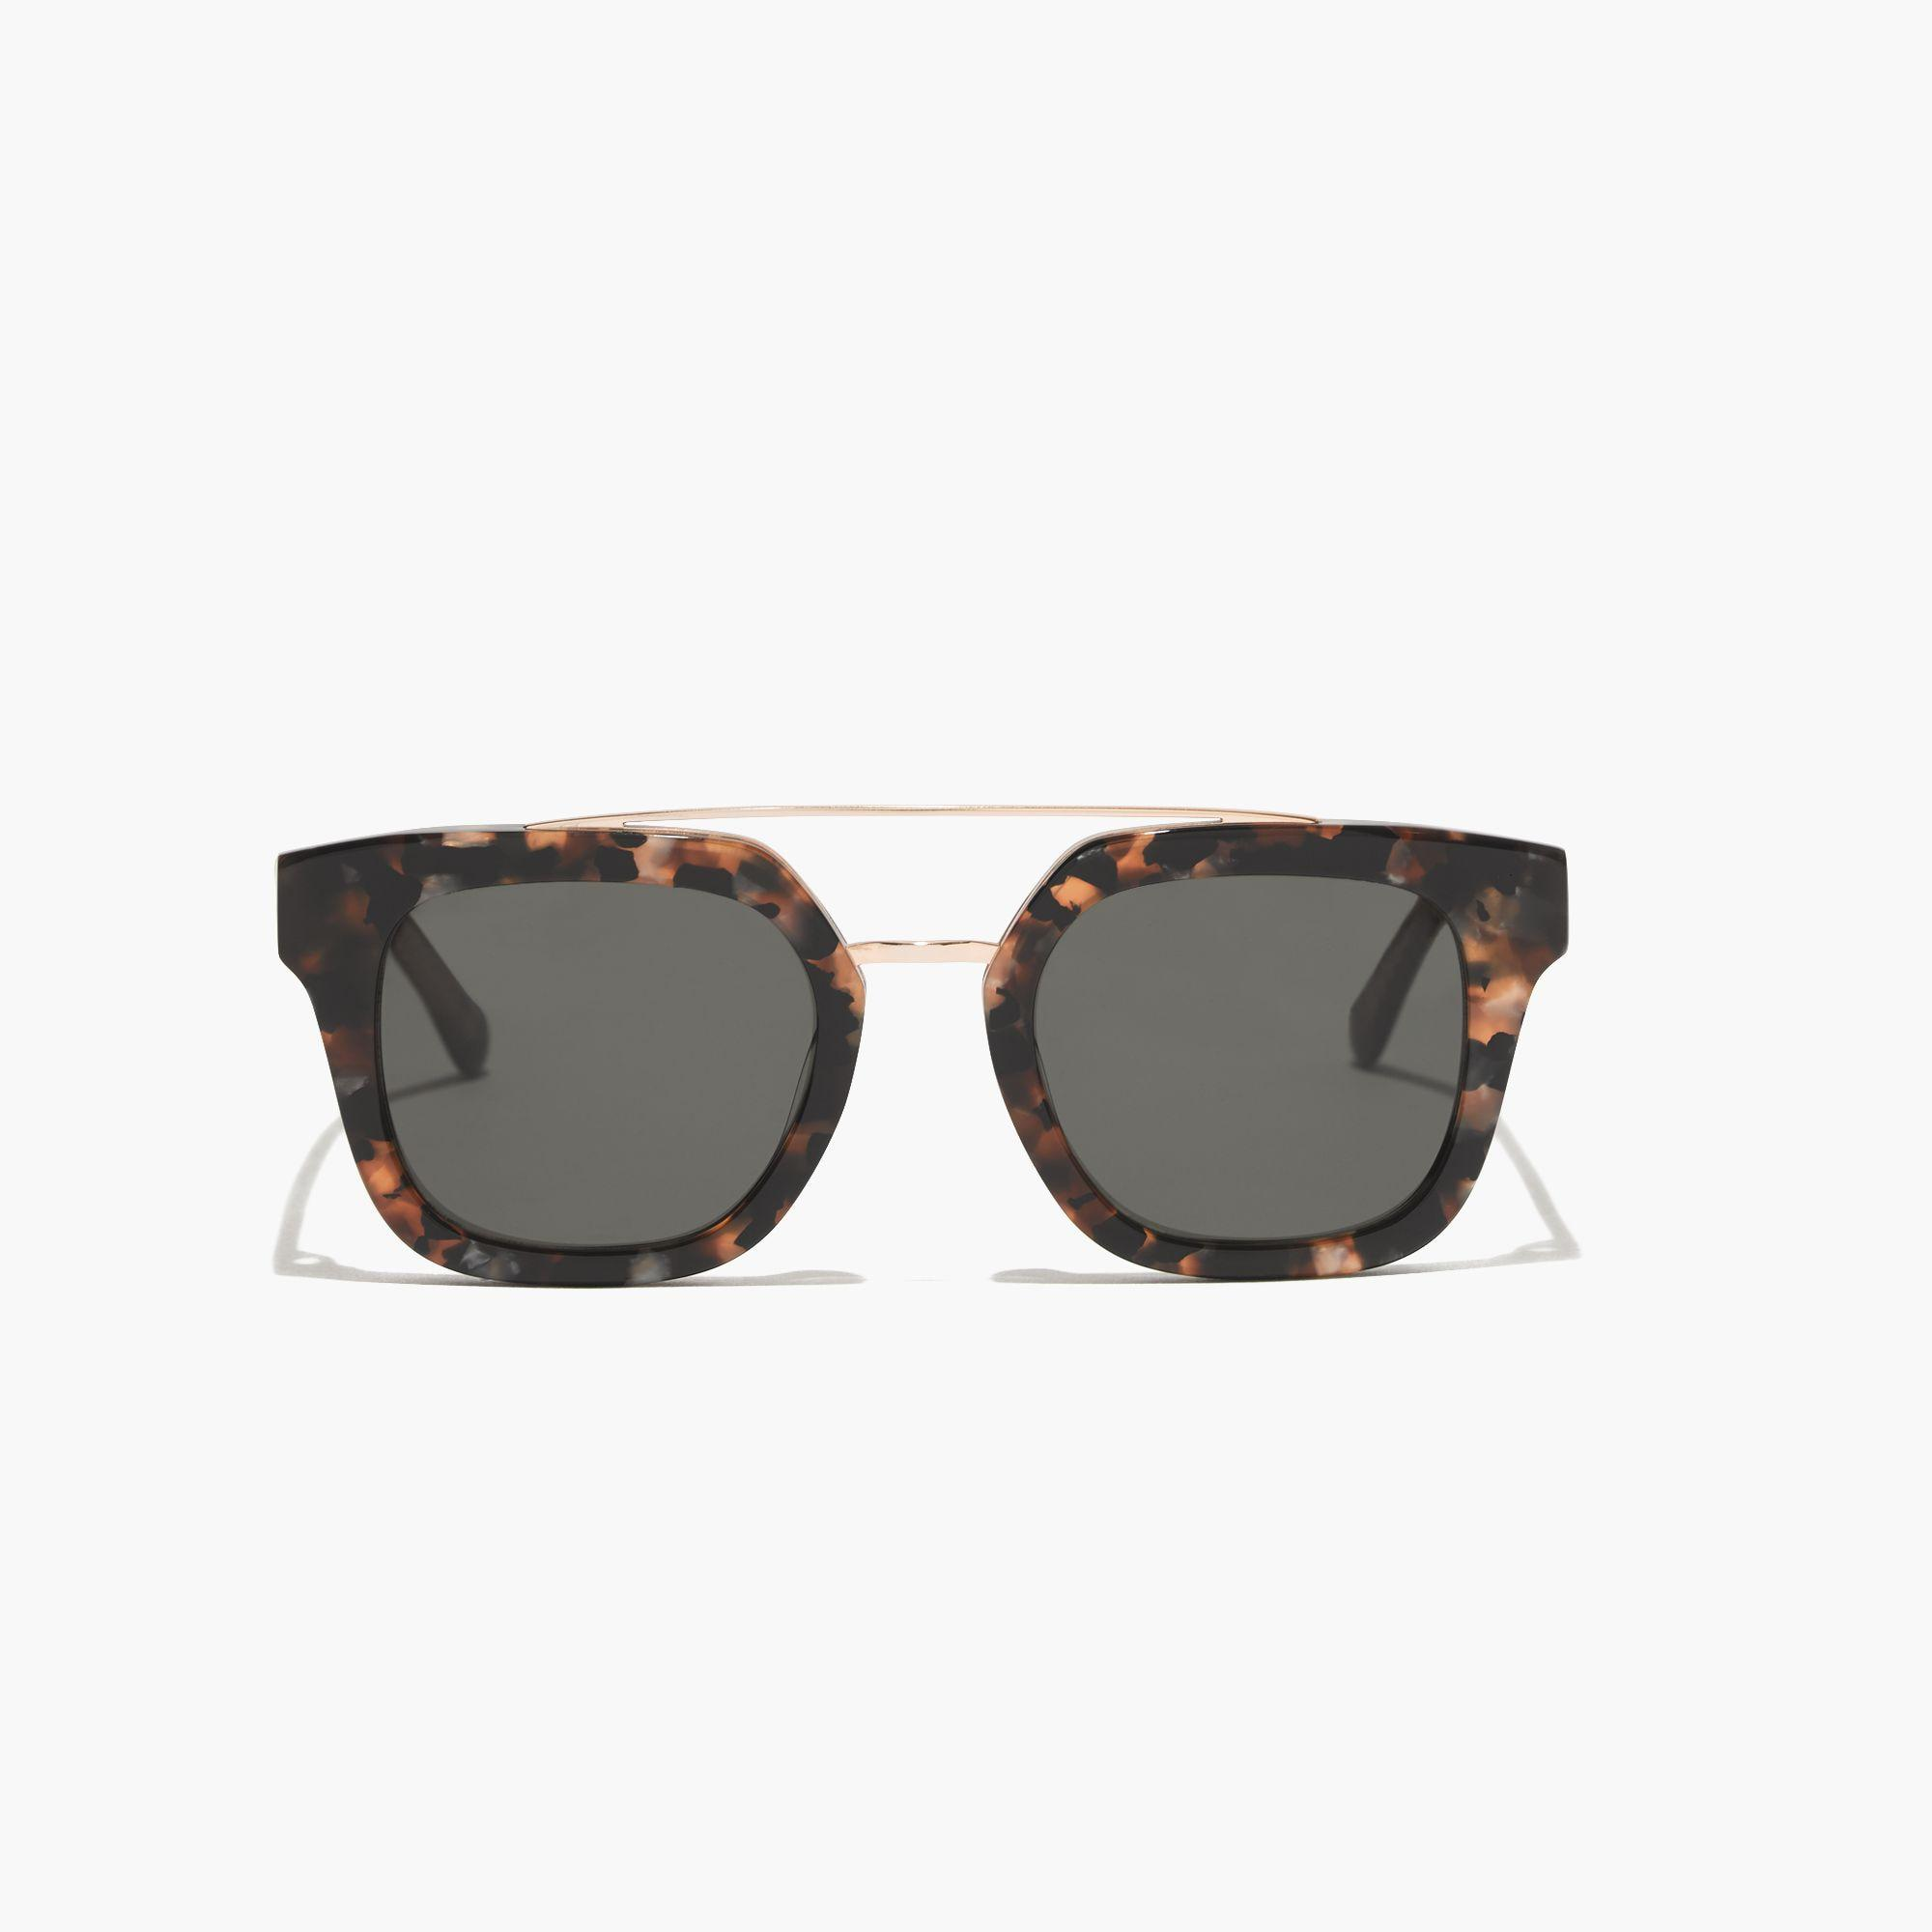 Madewell Lexington Top-bar Sunglasses